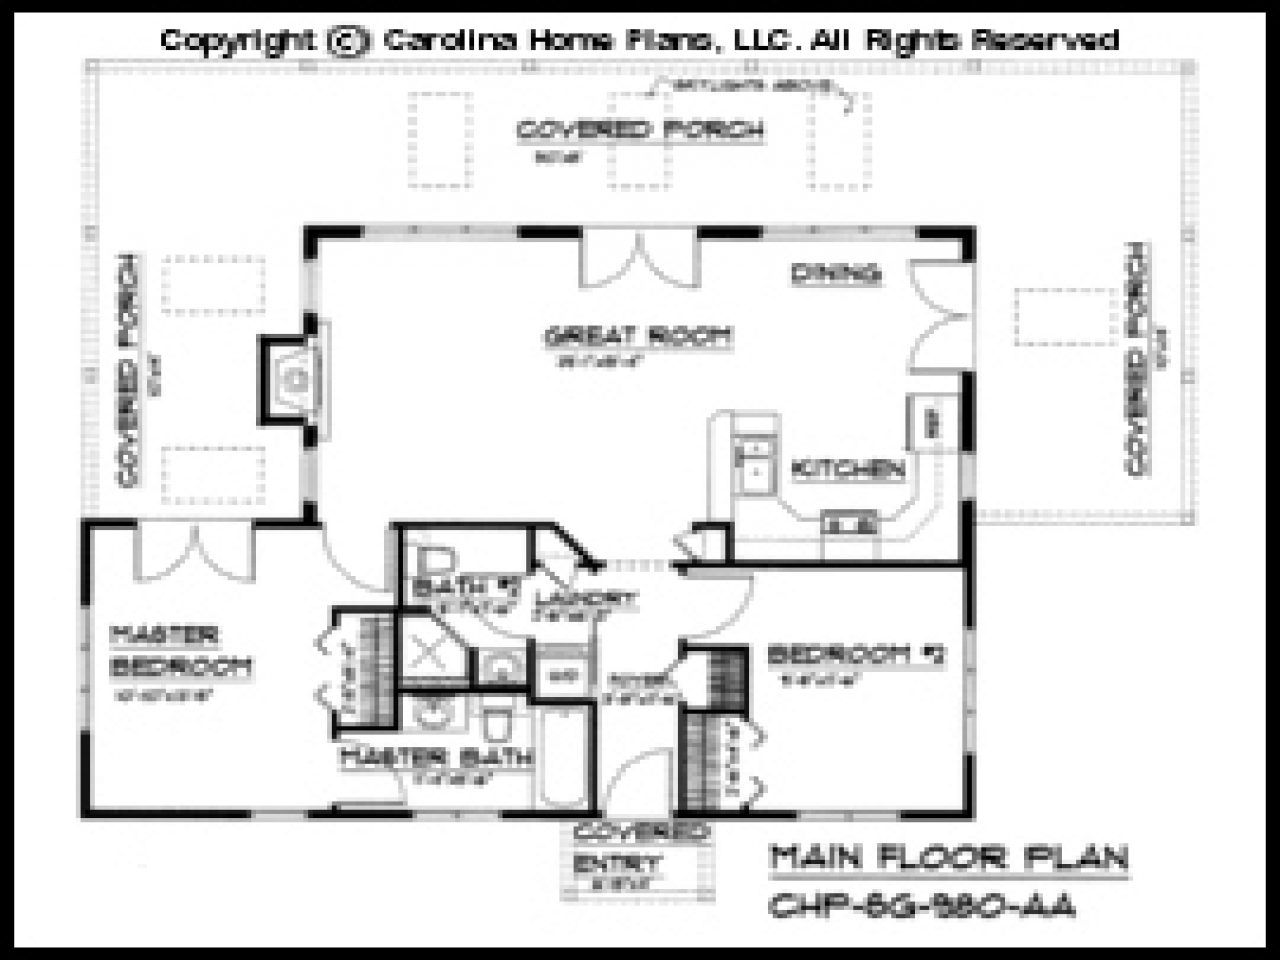 Very Small House Plans Small House Plans Under Sq Ft House Plans Under Square Feet